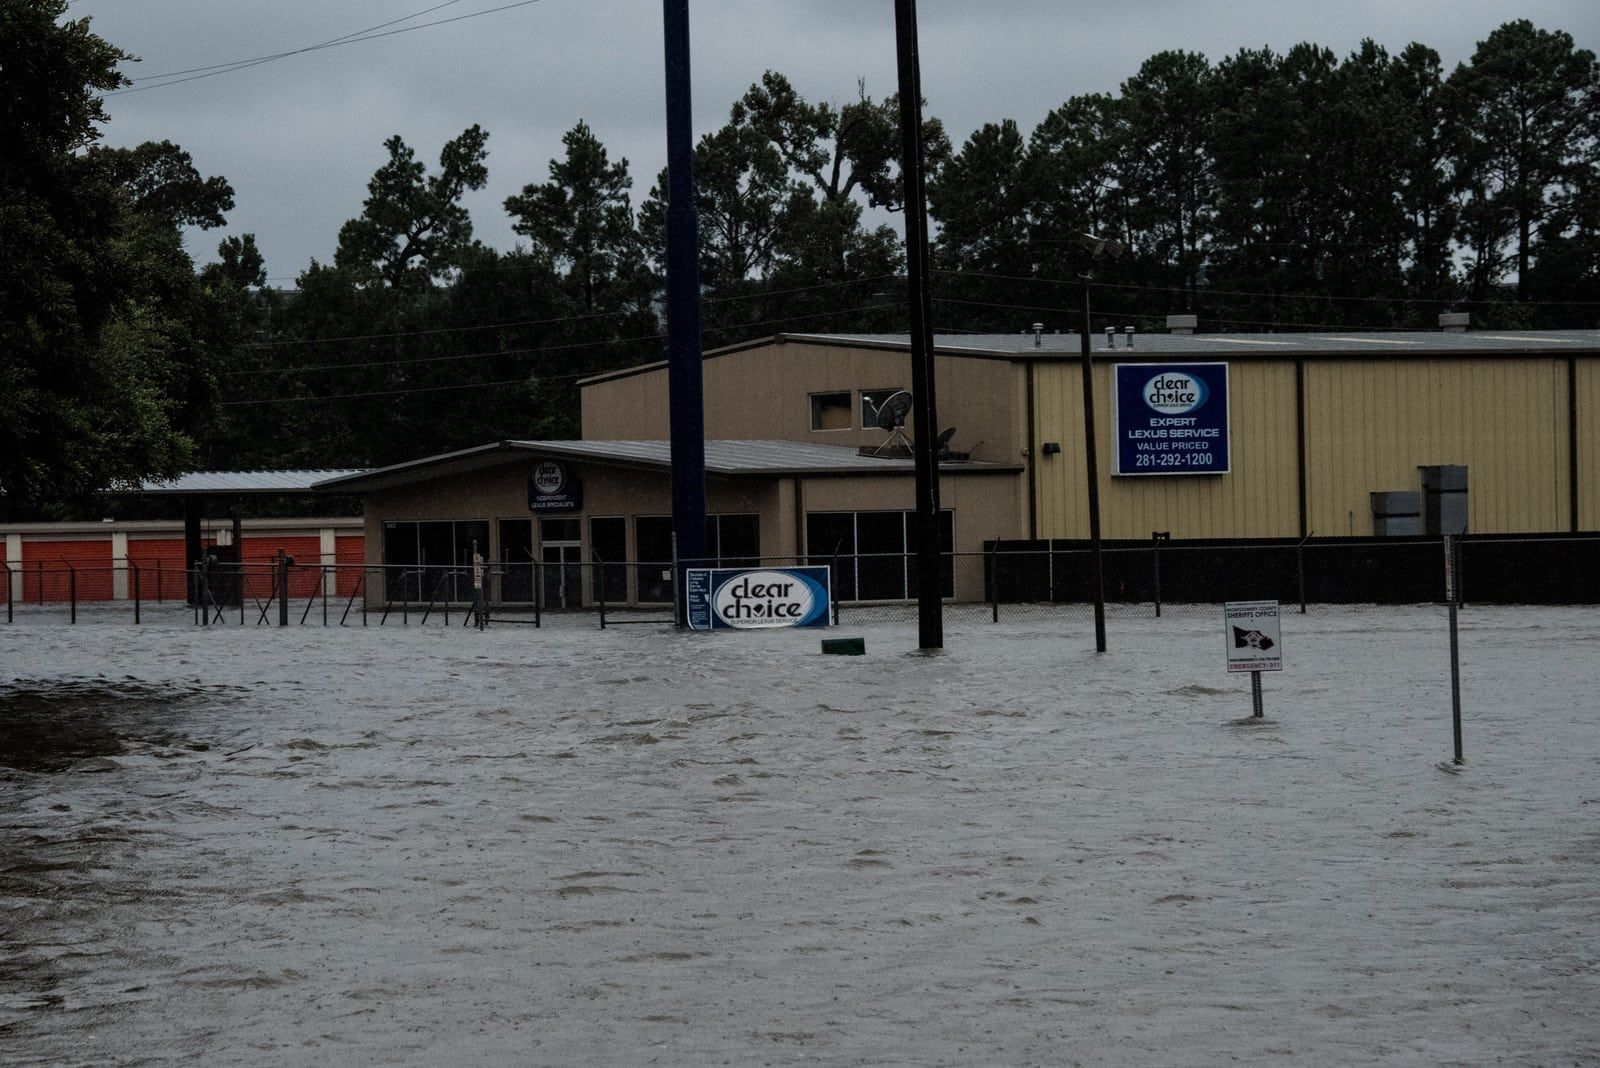 Hurricane Matthew 5 Things To Know With Images Hurricane Matthew Hurricane Storm Surge